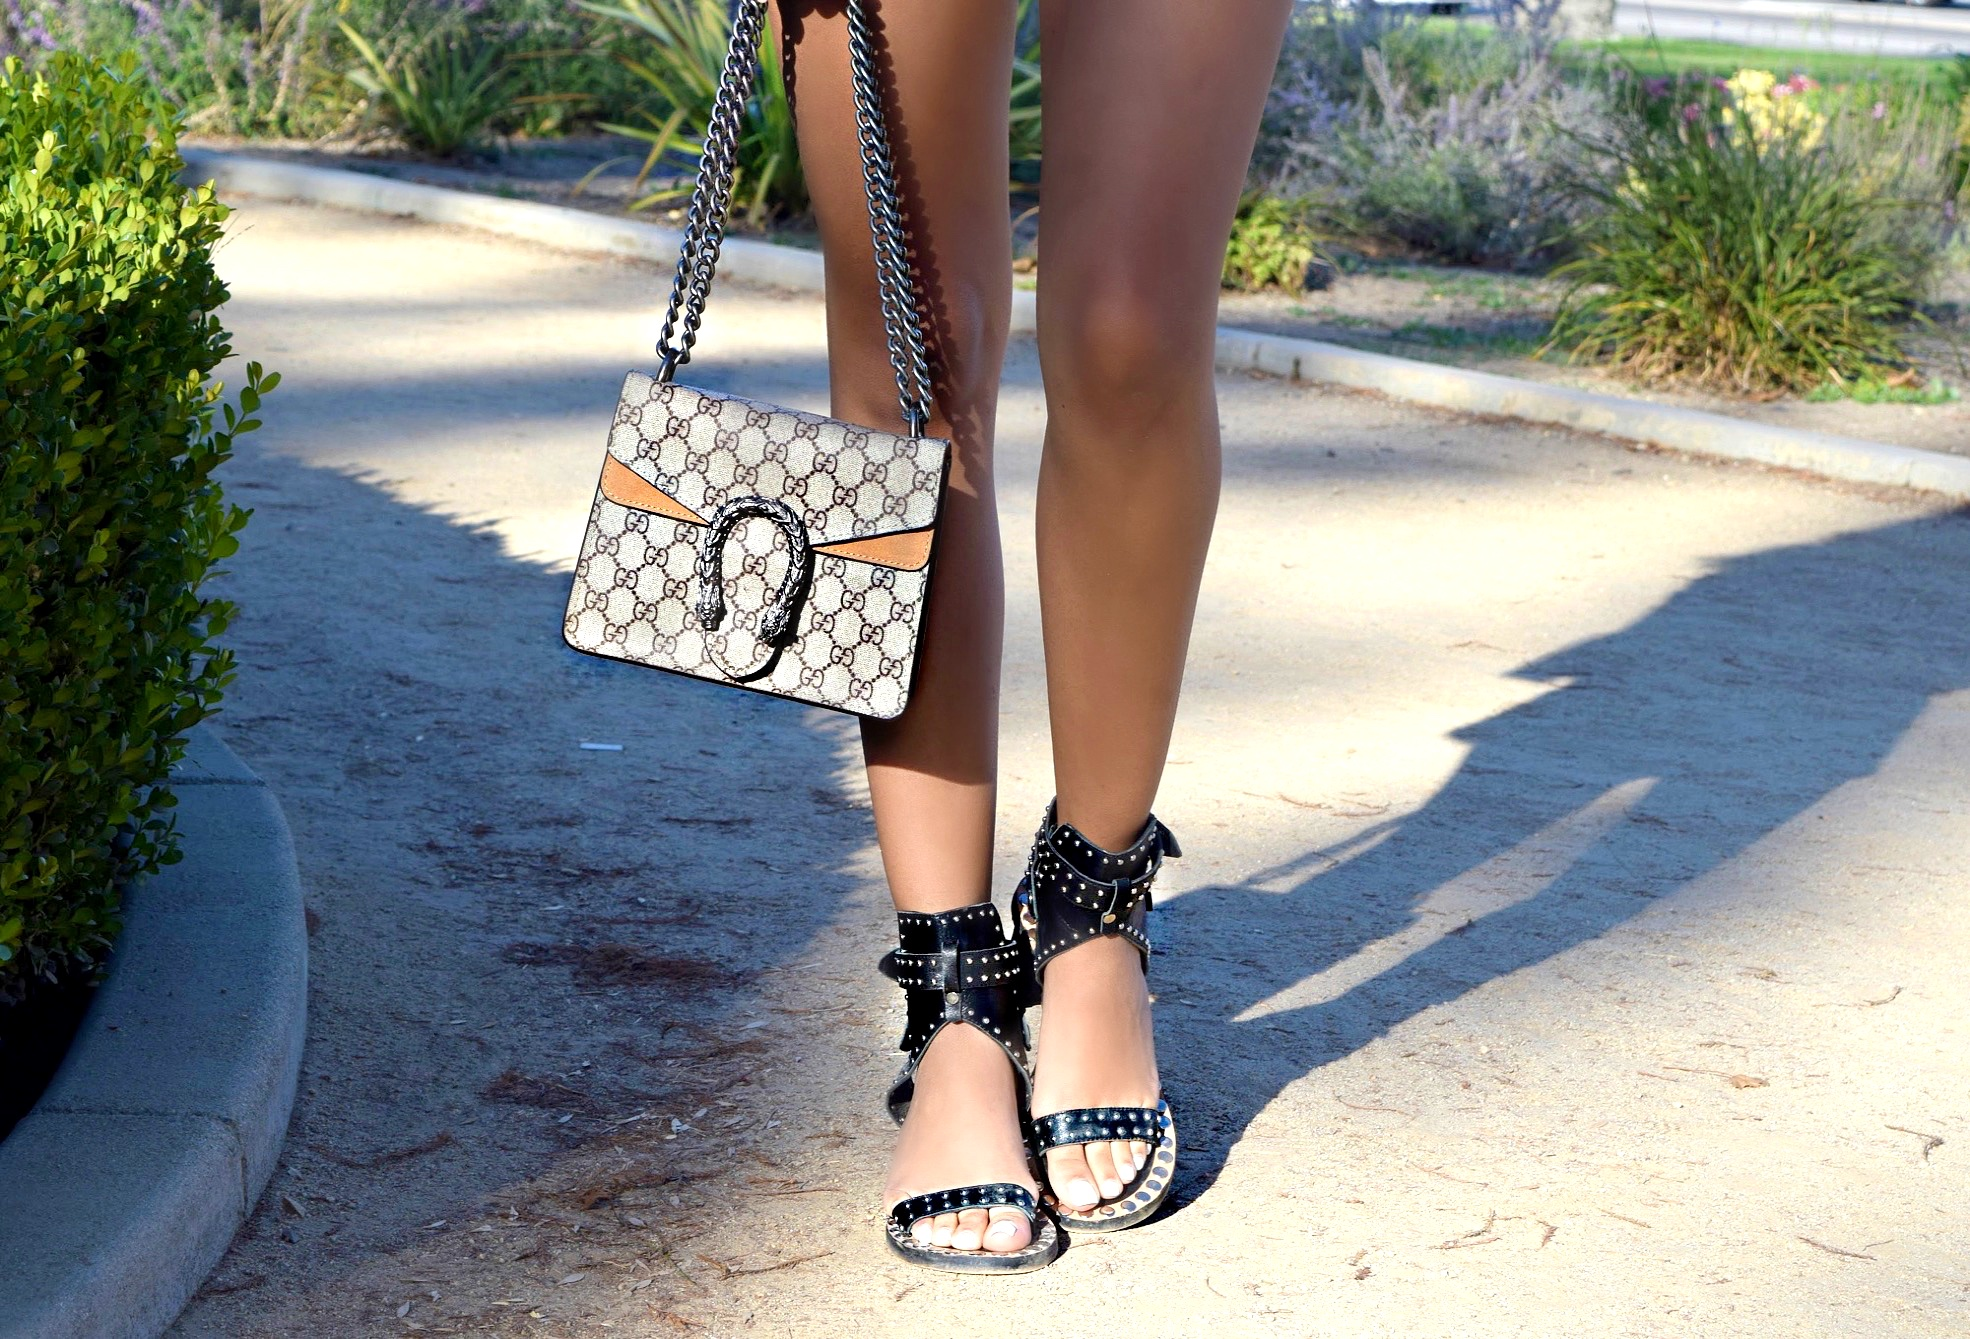 Gucci Dionysus Crossbody Bag + Isabel Marant Sandals: To Style, With Love